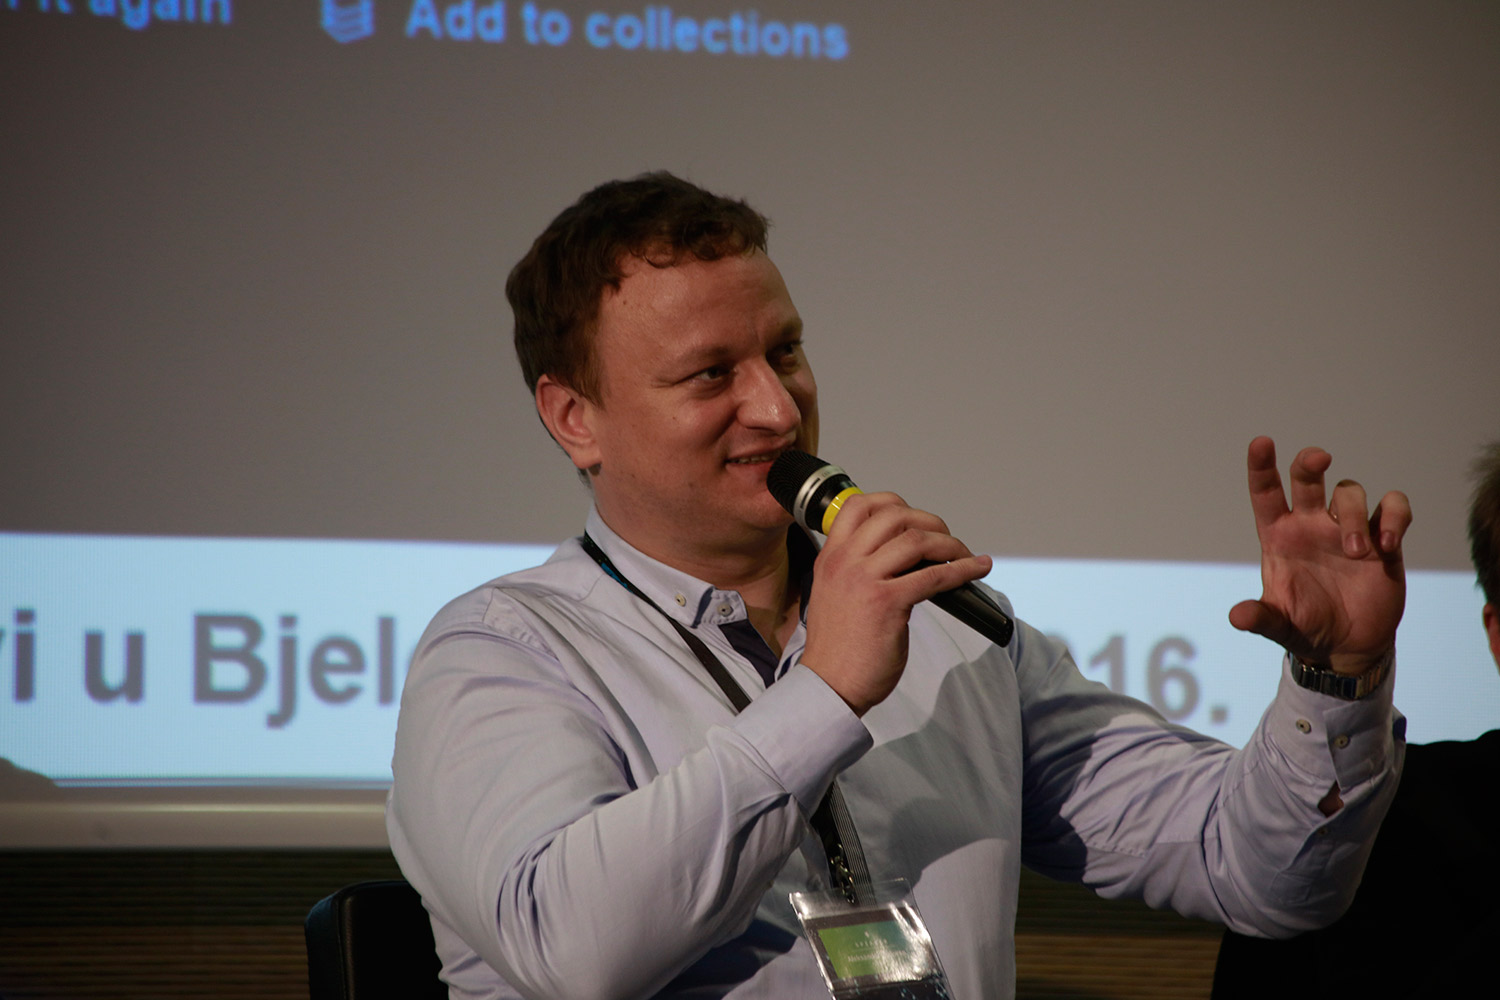 http://2016.changecon.com/wp-content/uploads/2016/10/Panel_Radovan.jpg